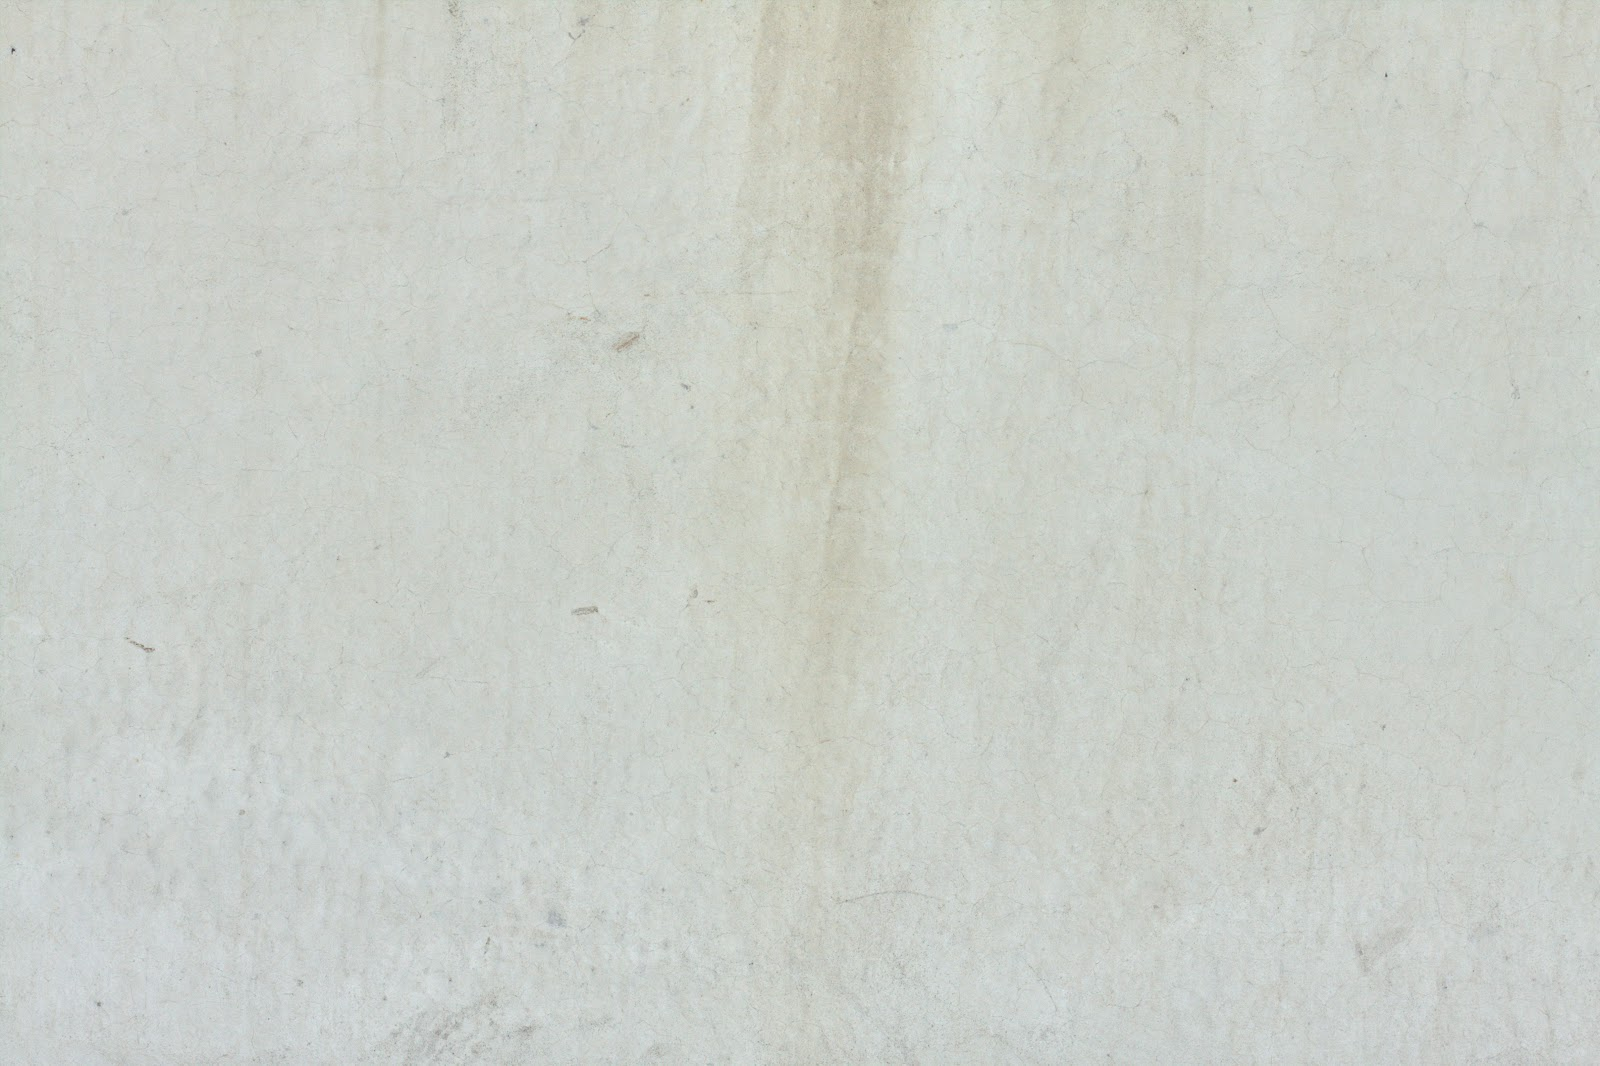 Concrete smooth white wash dirty wall texture ver2 4770x3178